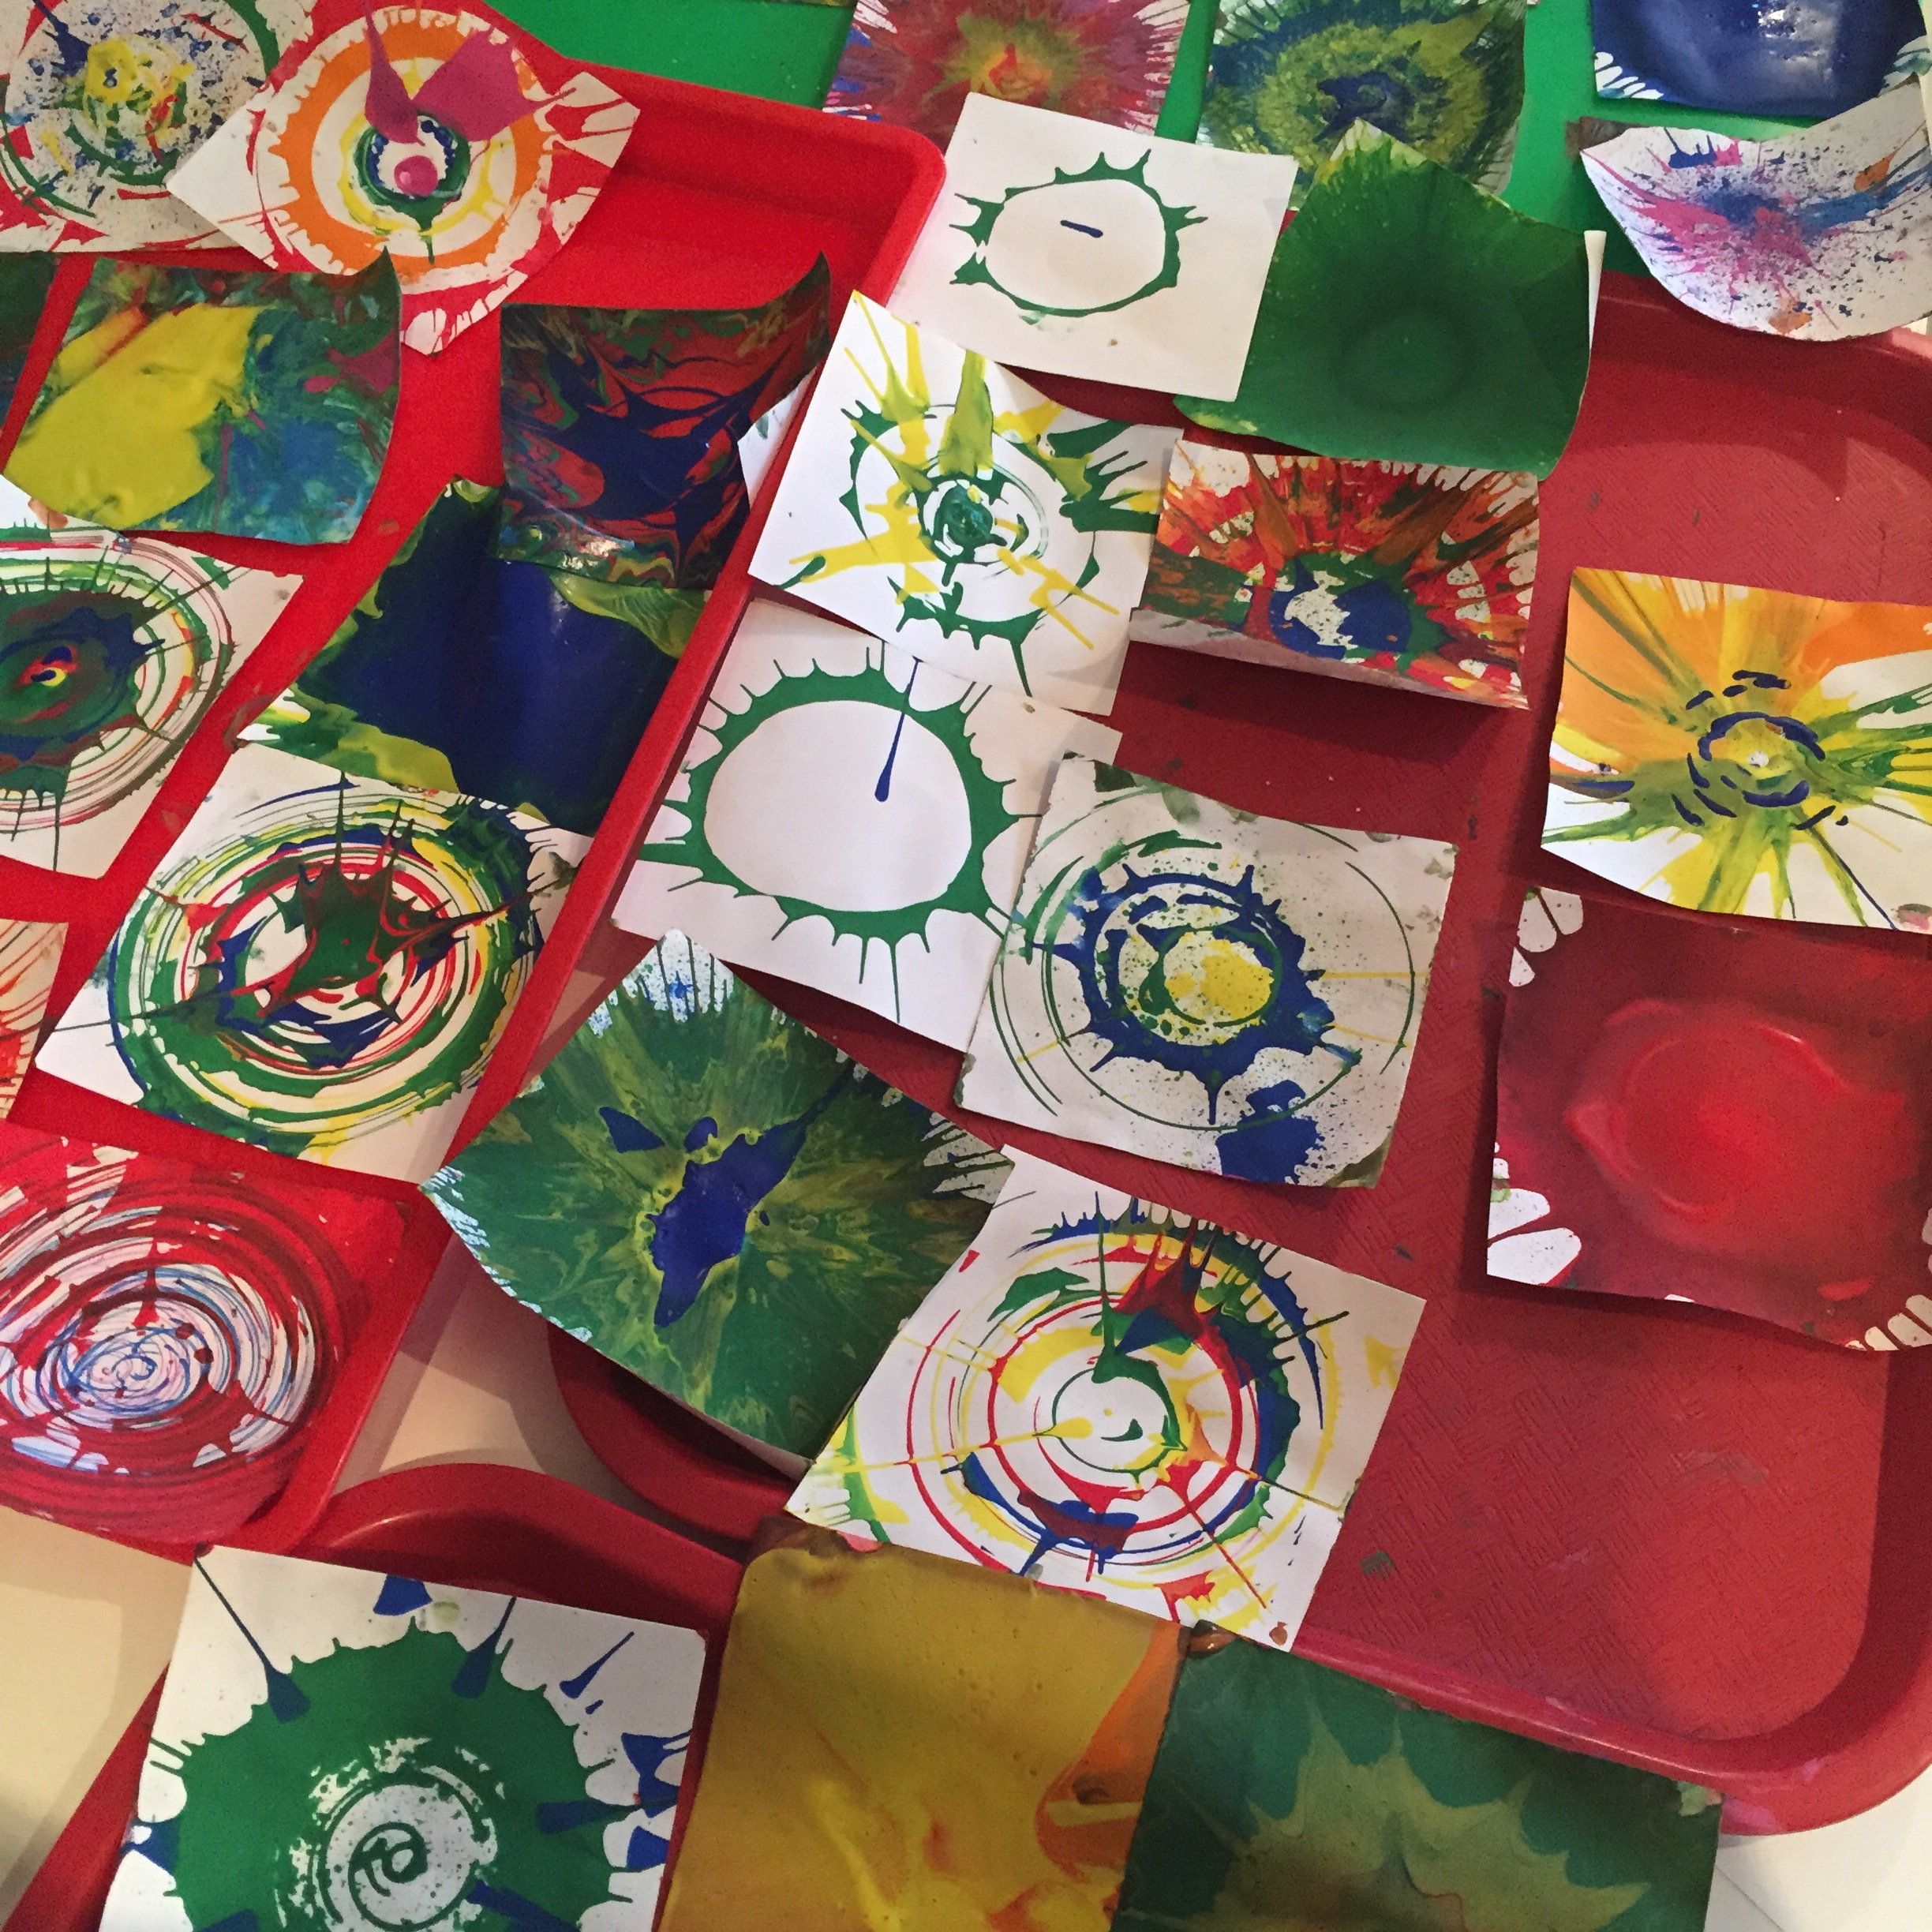 Thursday, May 31 - Spin Art Afternoon1:00 pm - 3:30 pmEvery kid's favorite art machine will be out and setup on our Scribble Space table. This activity is included with regular Art Free Play ($15 + tax or FREE to members). Sign up for a time slot here.